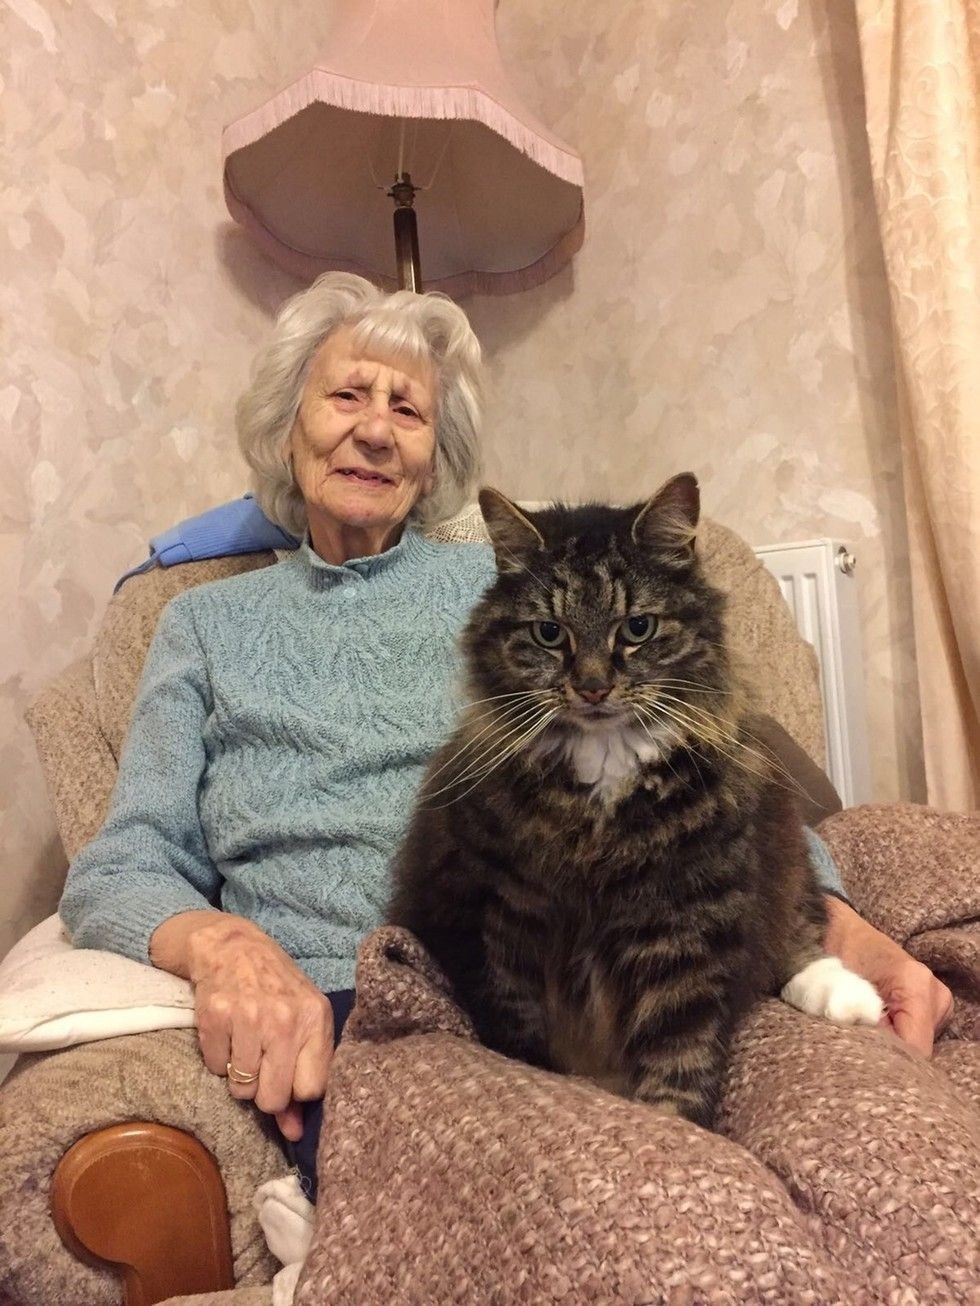 """A beautiful tabby cat named Rio became the love of a grandmother's life 13 years ago. Rio hasn't left her side since the day they met. Grandma Stella turned 90 this week. This is her and the love of her life, Rio!         Courtesy: Courtney Stella         """"She turned 90 this week, and that cat Rio i..."""